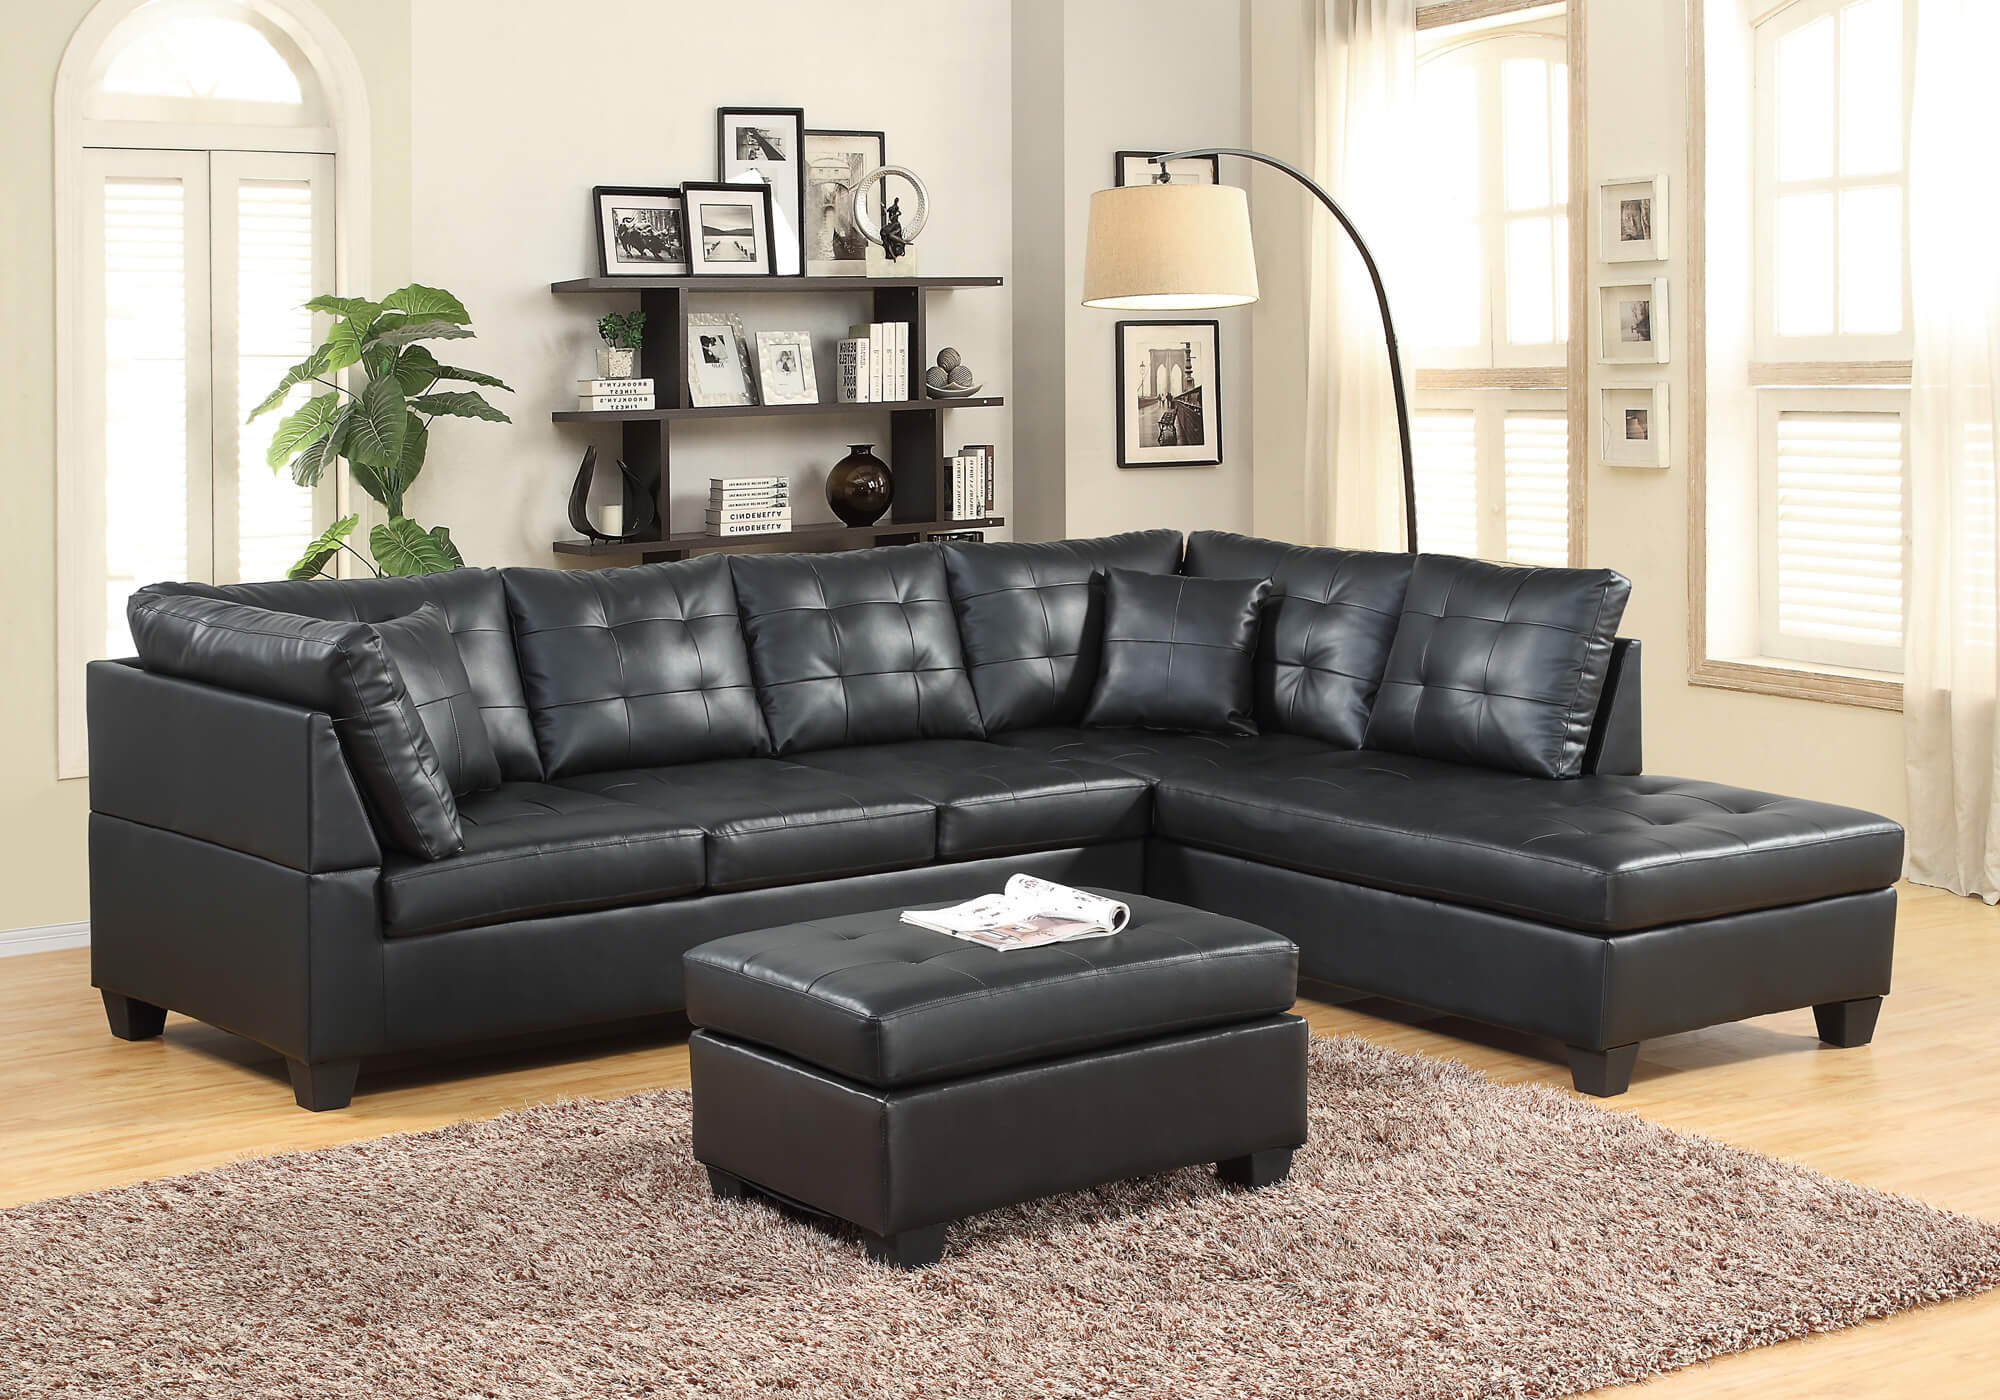 Black leather like sectiona sectional sofa sets for Sectional living room sets